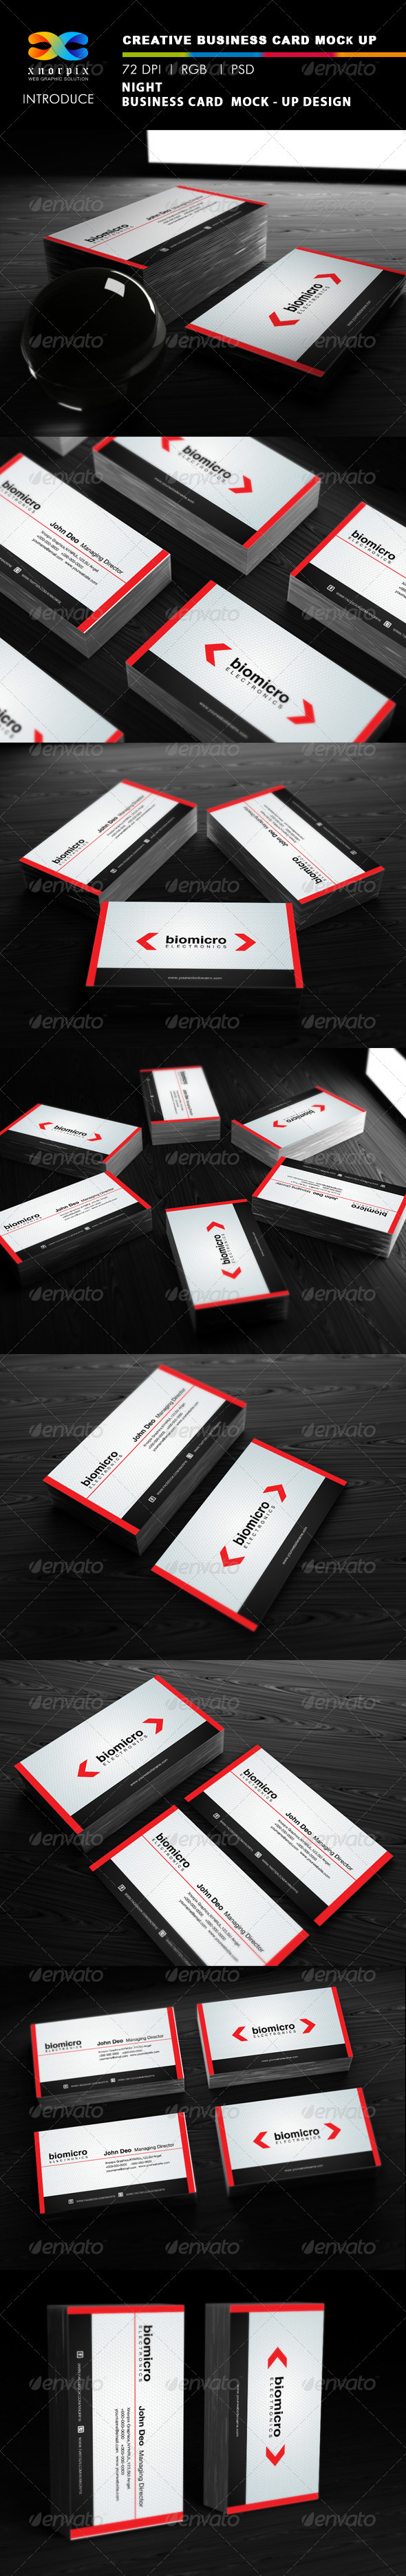 Night Business Card Mock-up - Business Cards Print